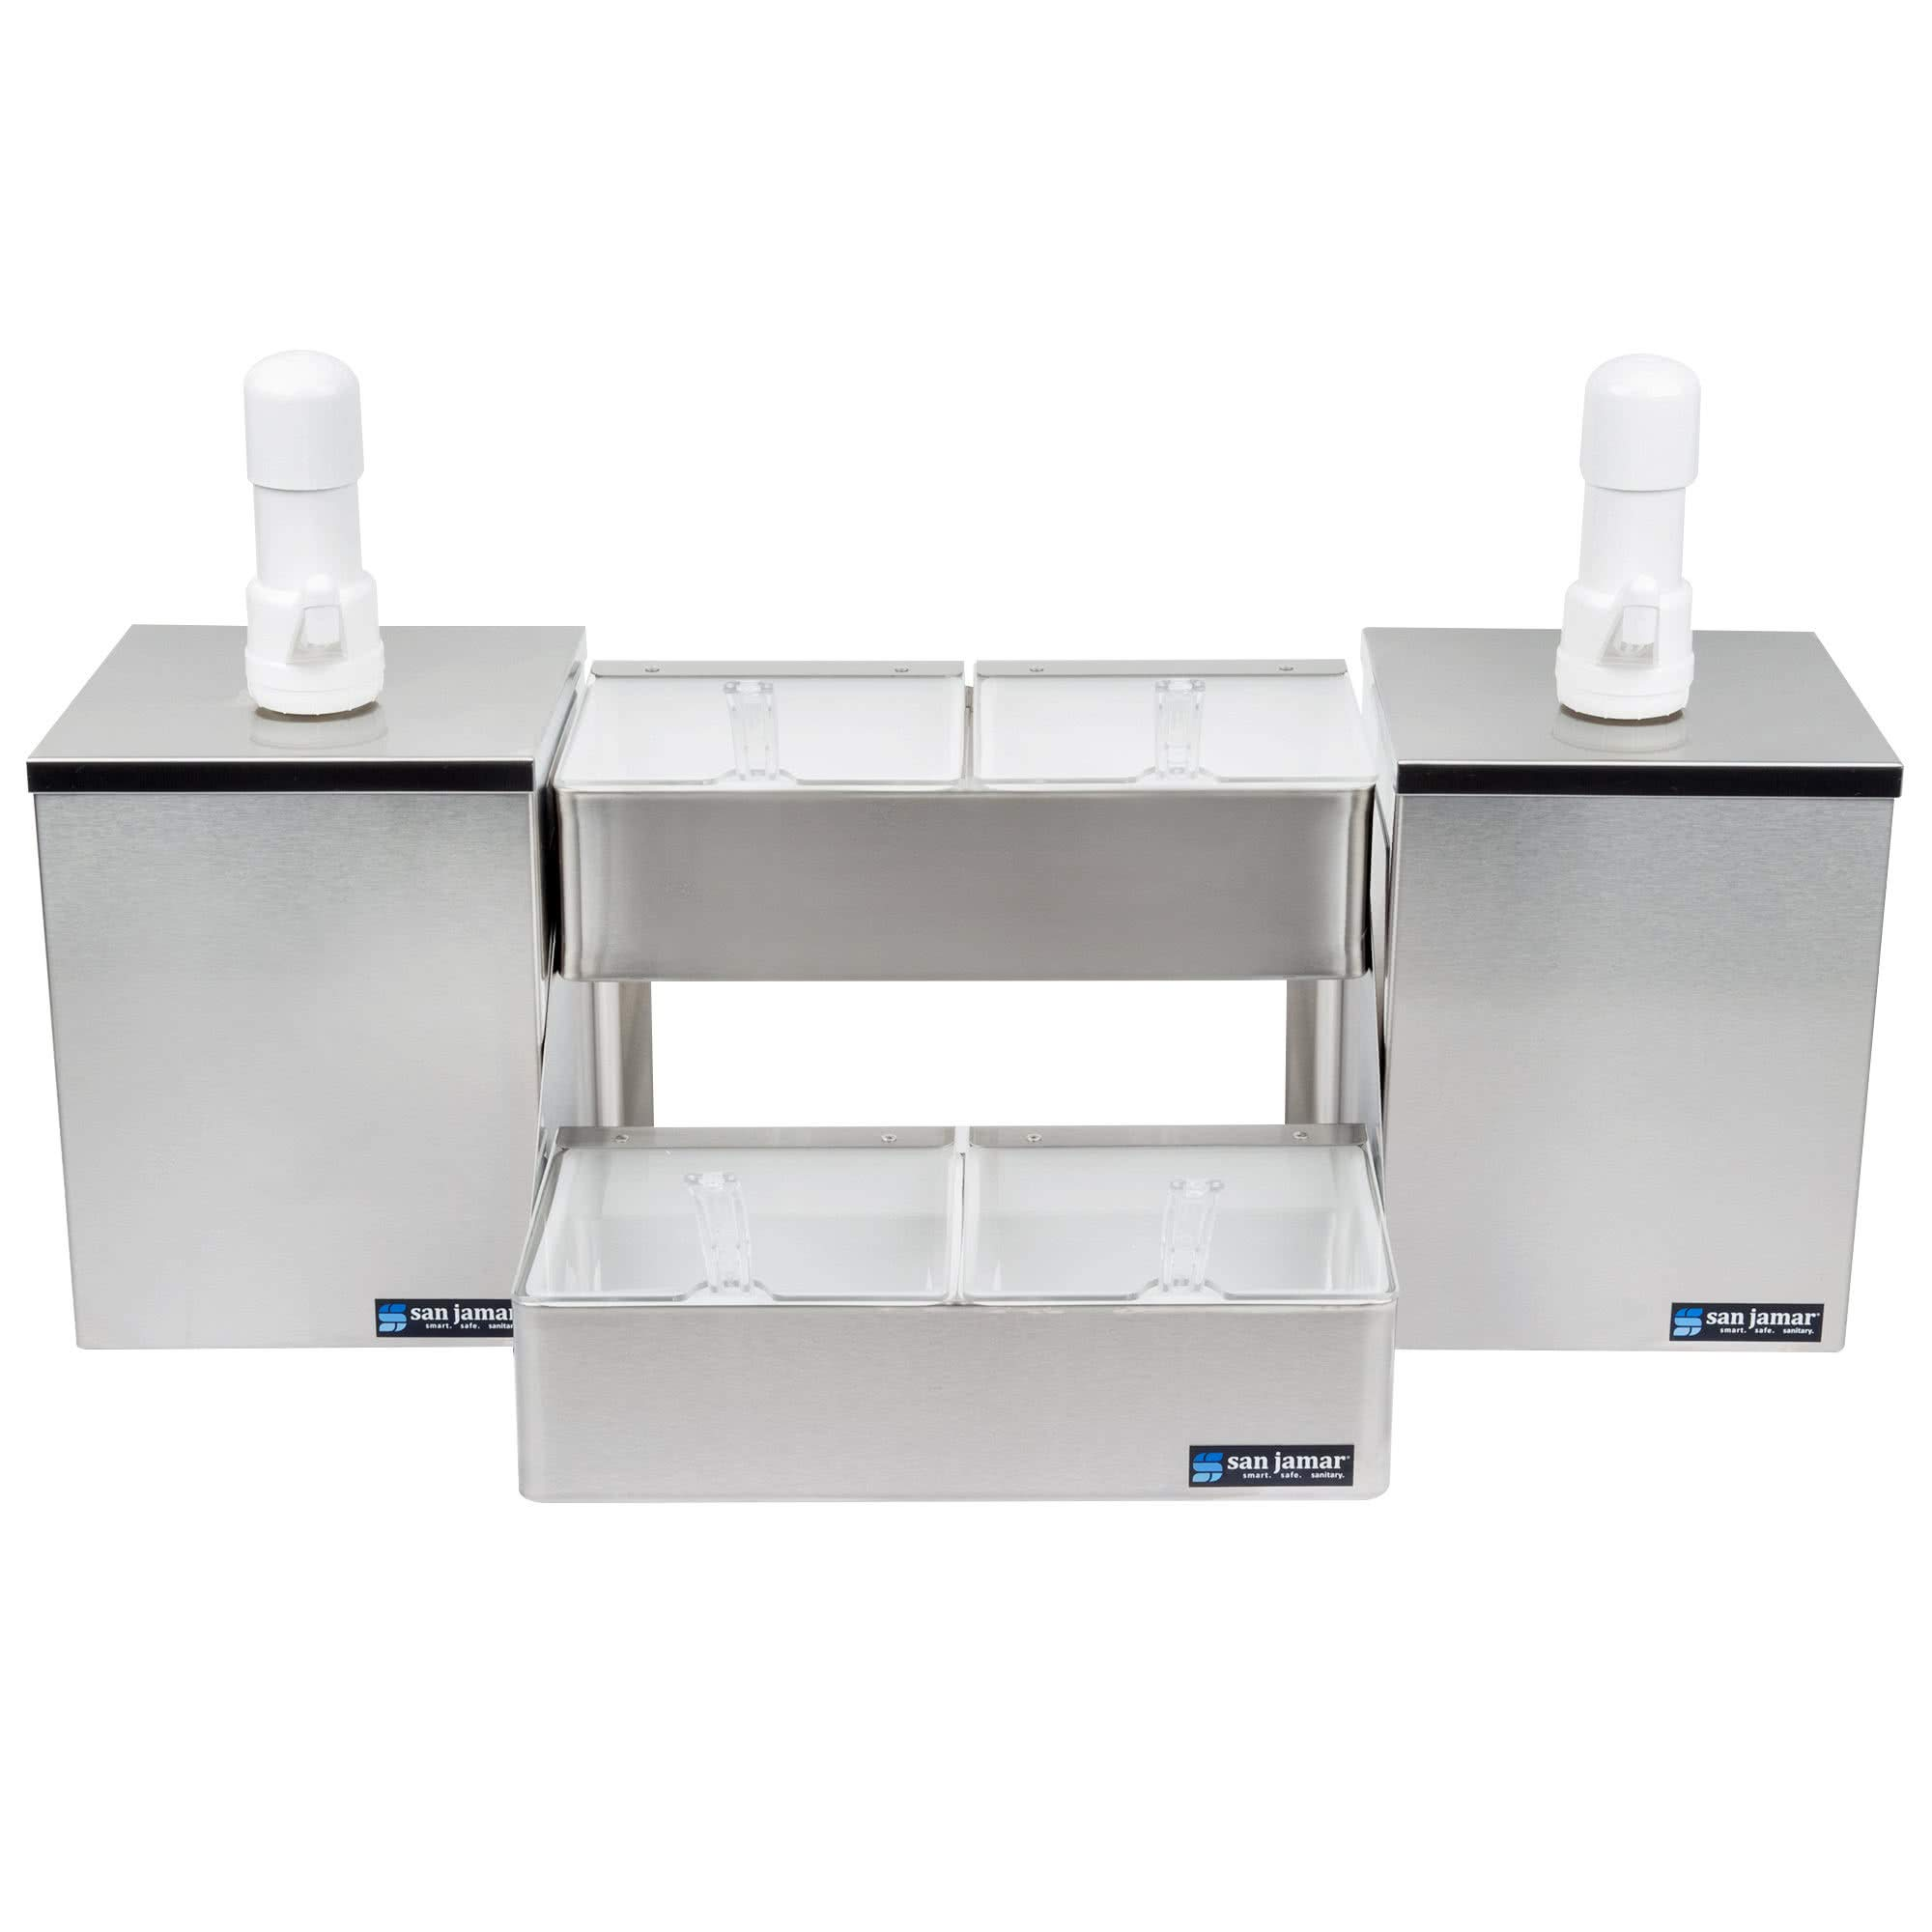 TableTop King P9825 Pump and Condiment Tray Center with 4 Trays and 2 Pump Boxes by TableTop King